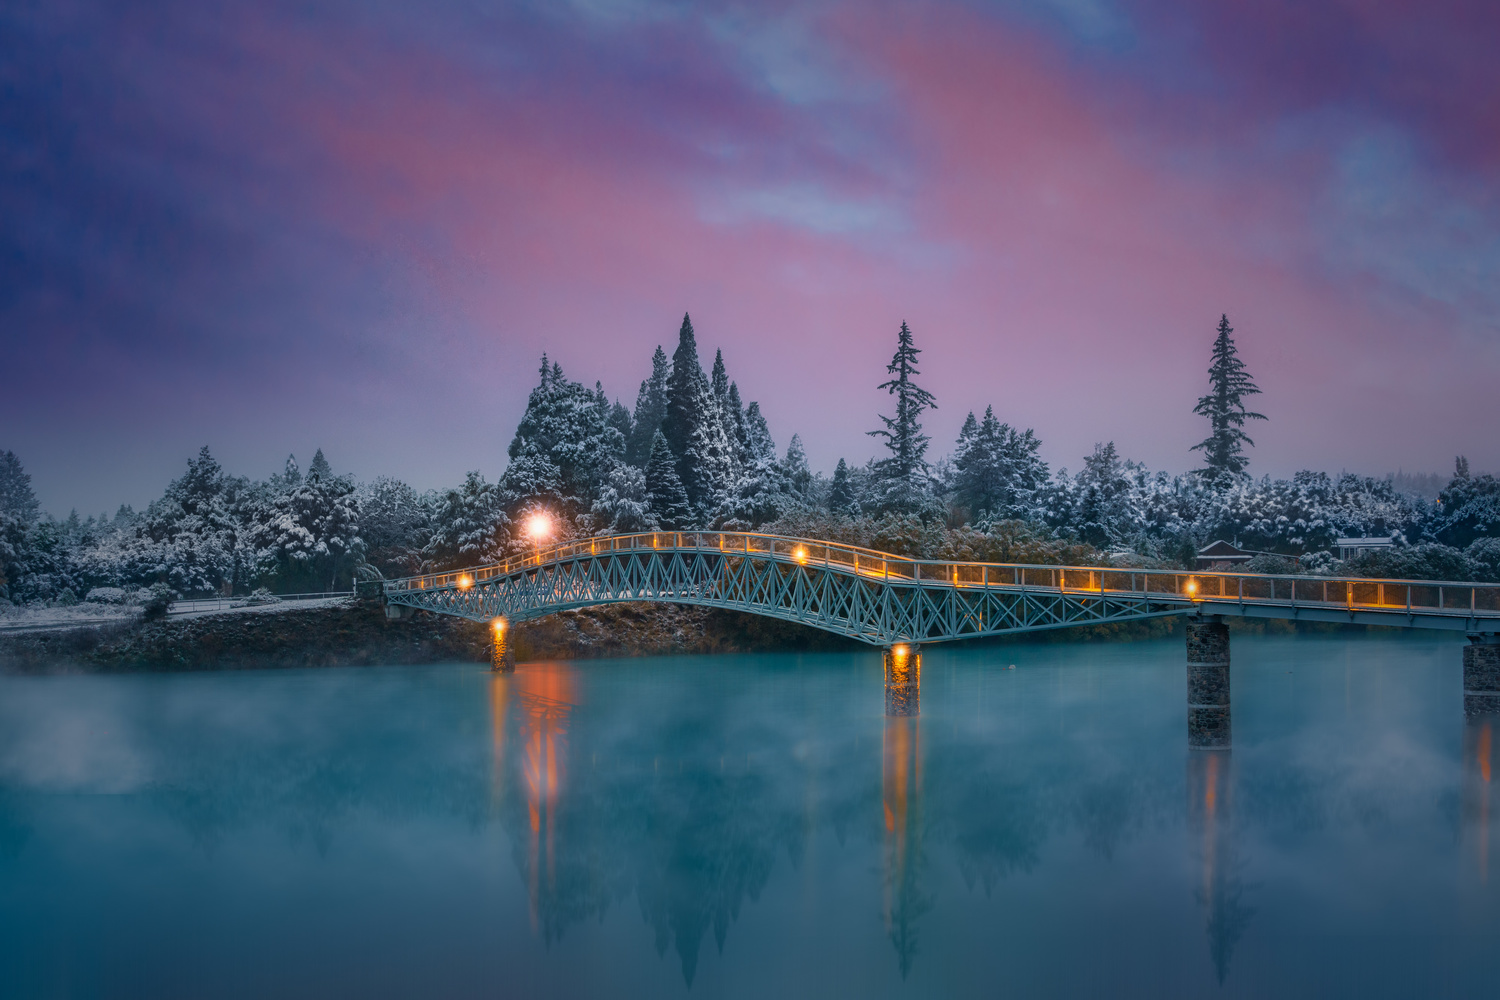 Walking Bridge of Lake Tekapo by Alex Hill